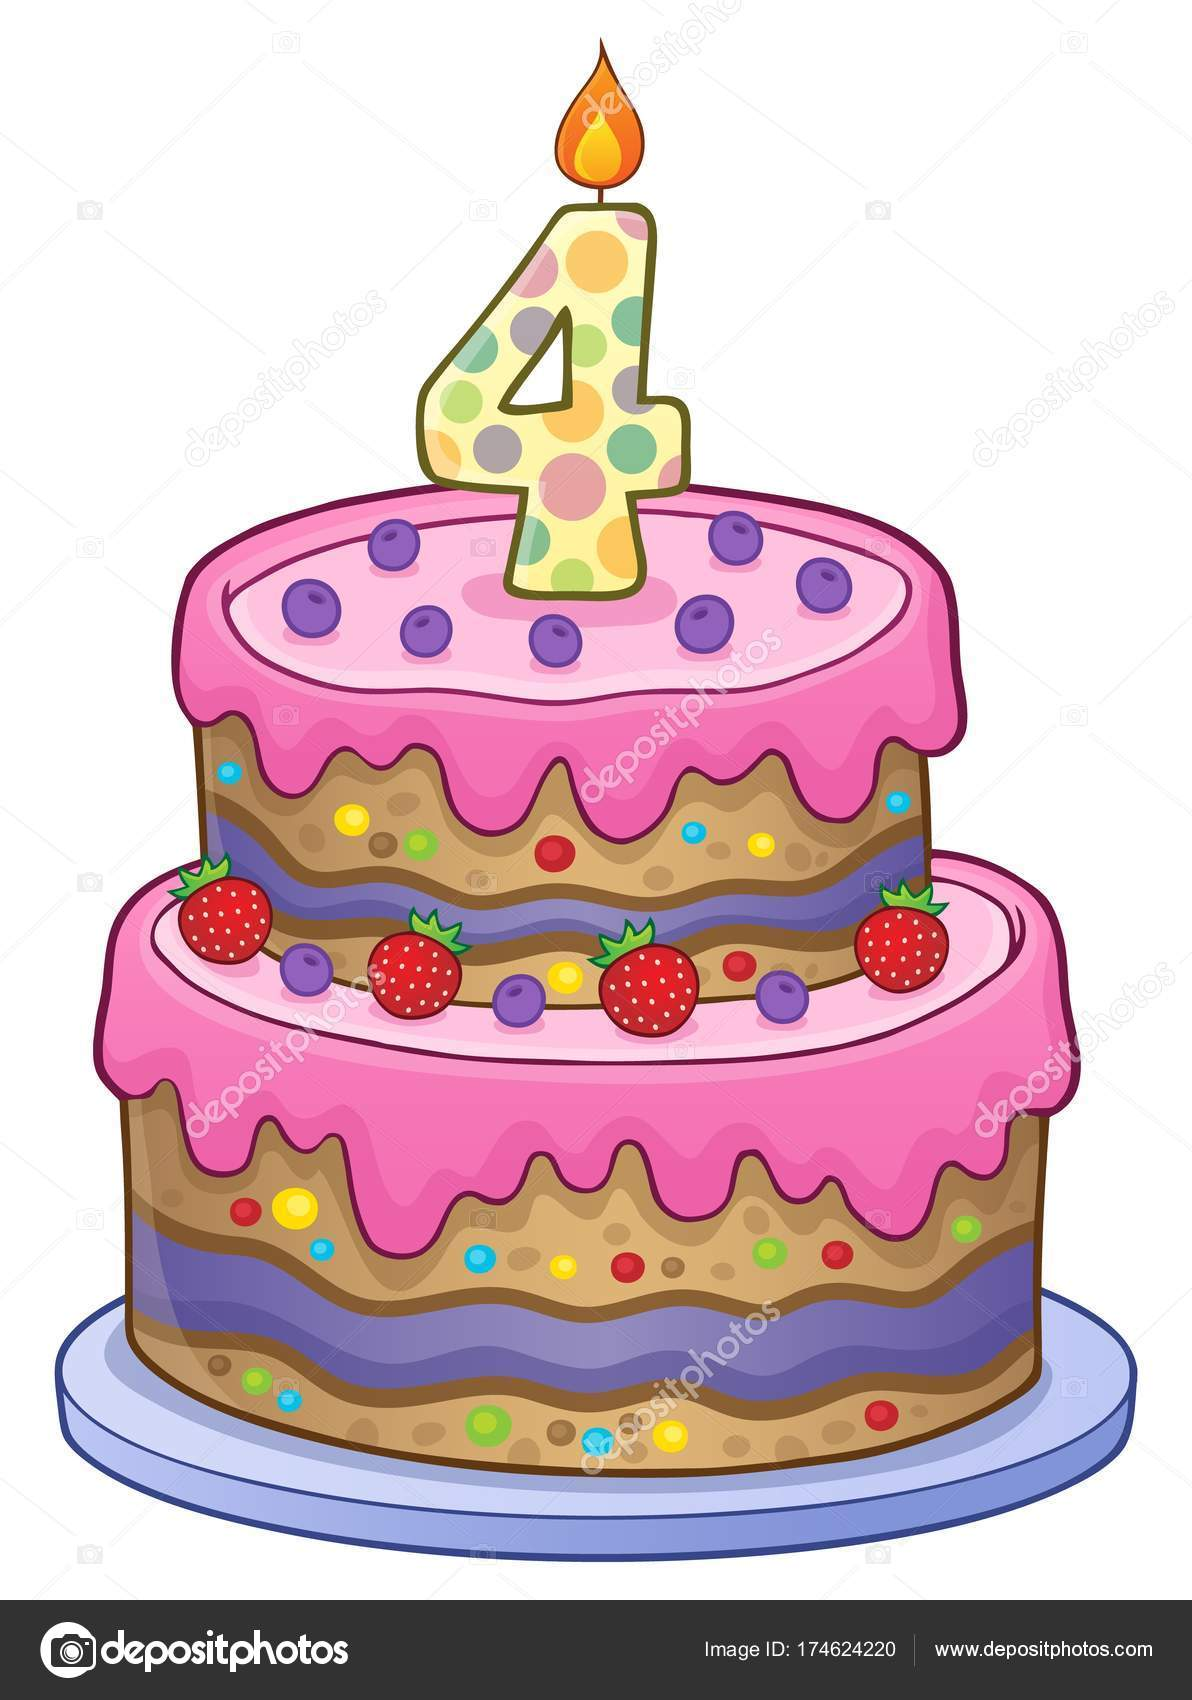 Phenomenal Pictures 4 Year Old Birthday Cake Birthday Cake Image For 4 Personalised Birthday Cards Veneteletsinfo